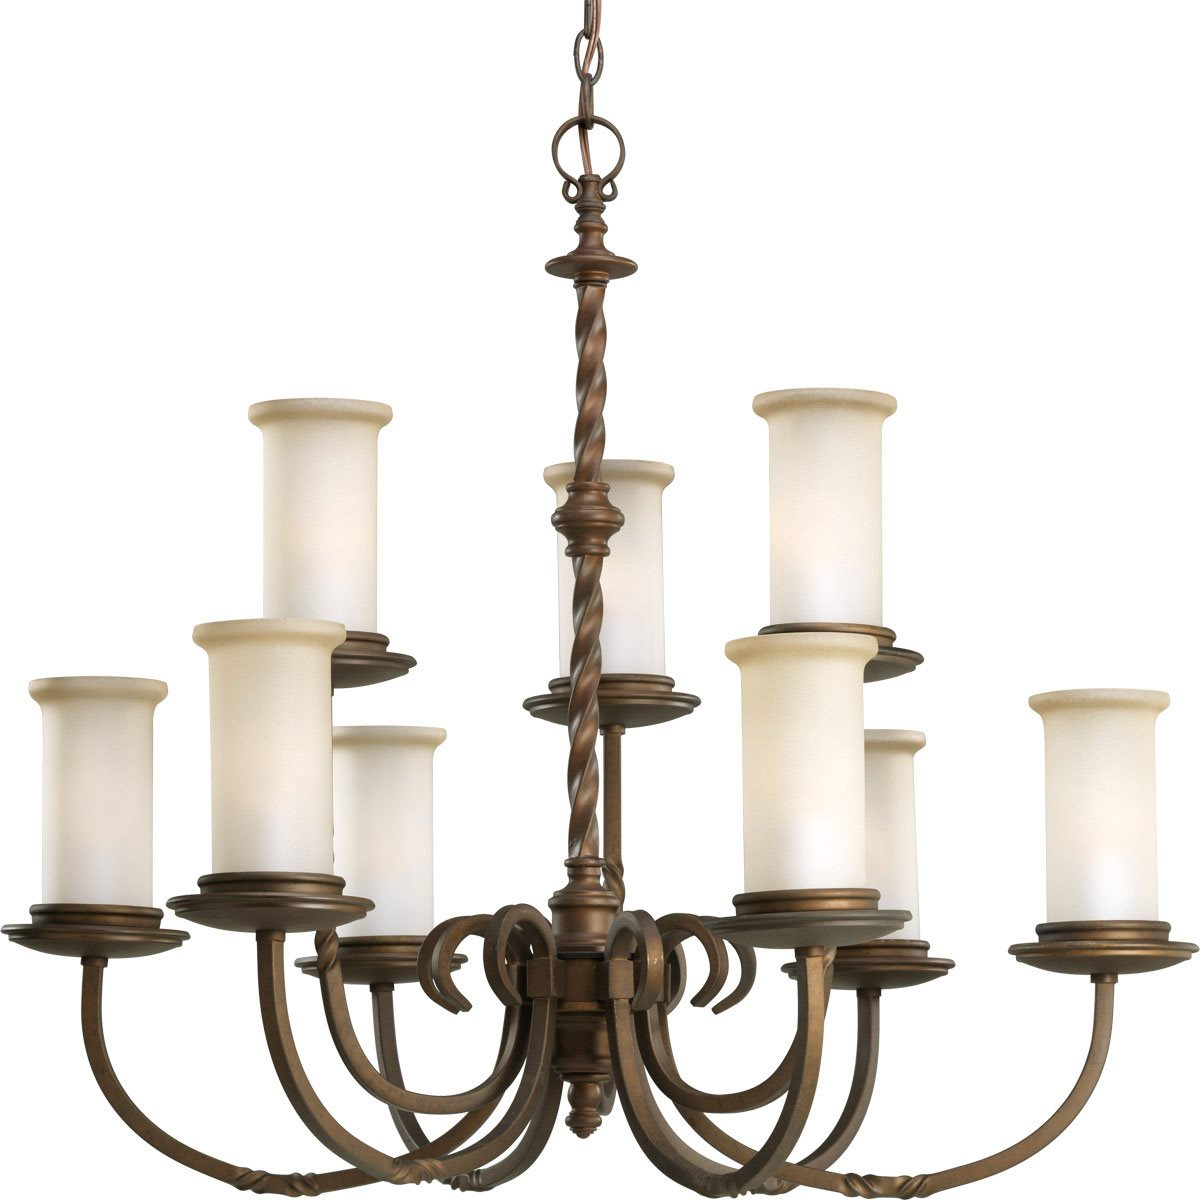 thomasville lighting p4179 102 santiago traditional 9 light chandelier pg p4179 102